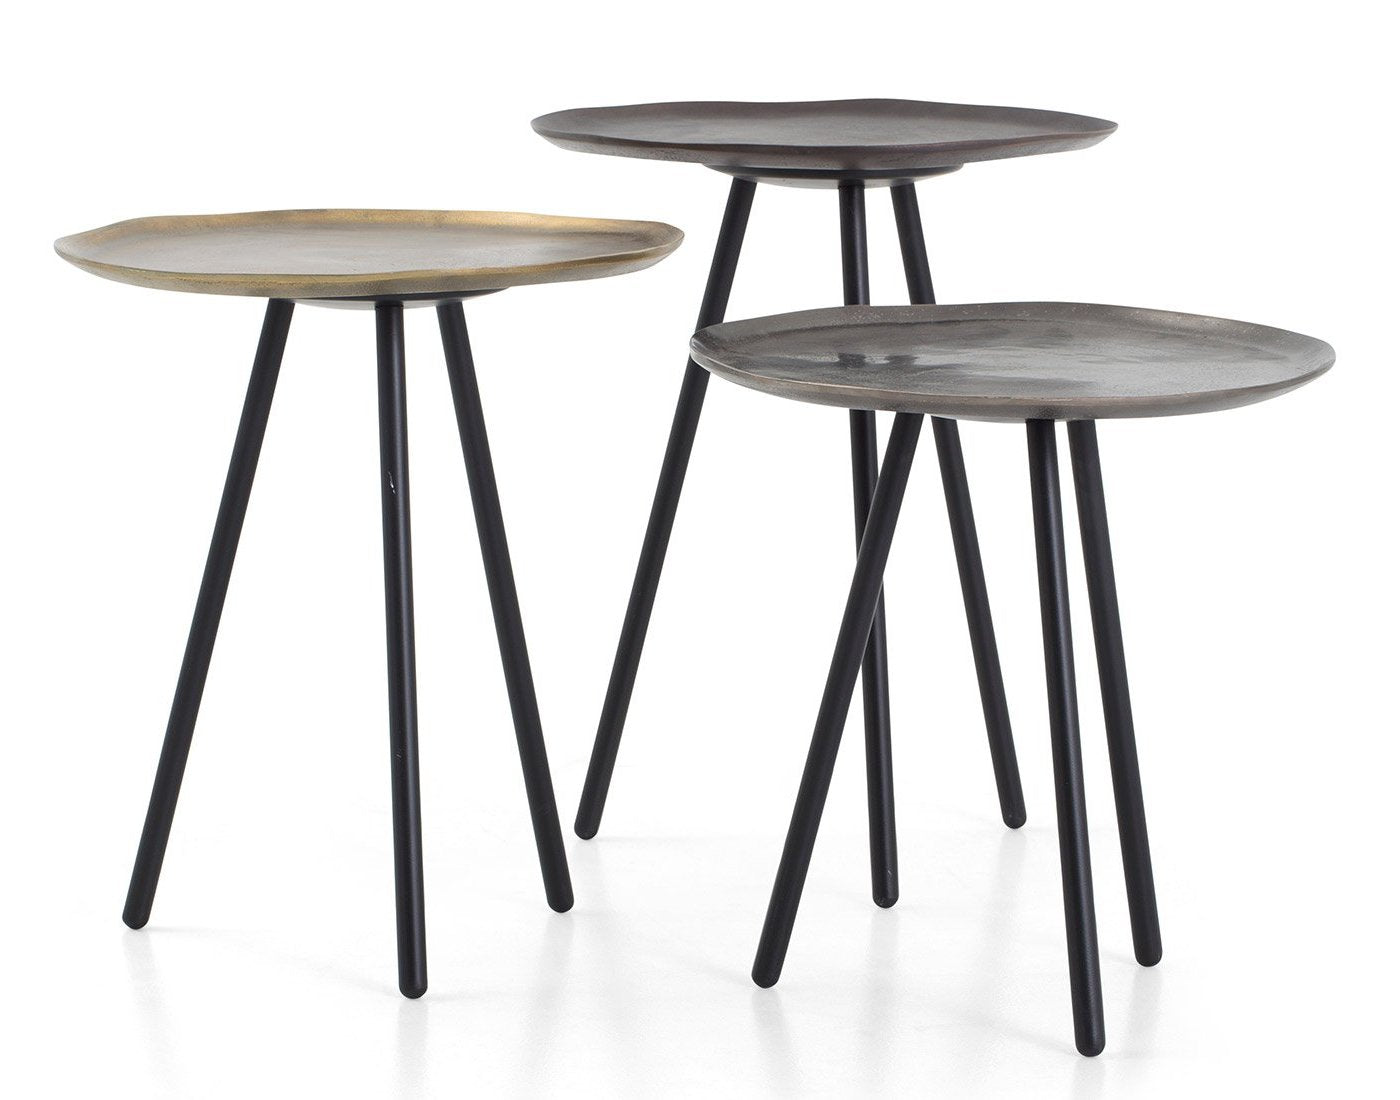 S/3 Side Table Callez